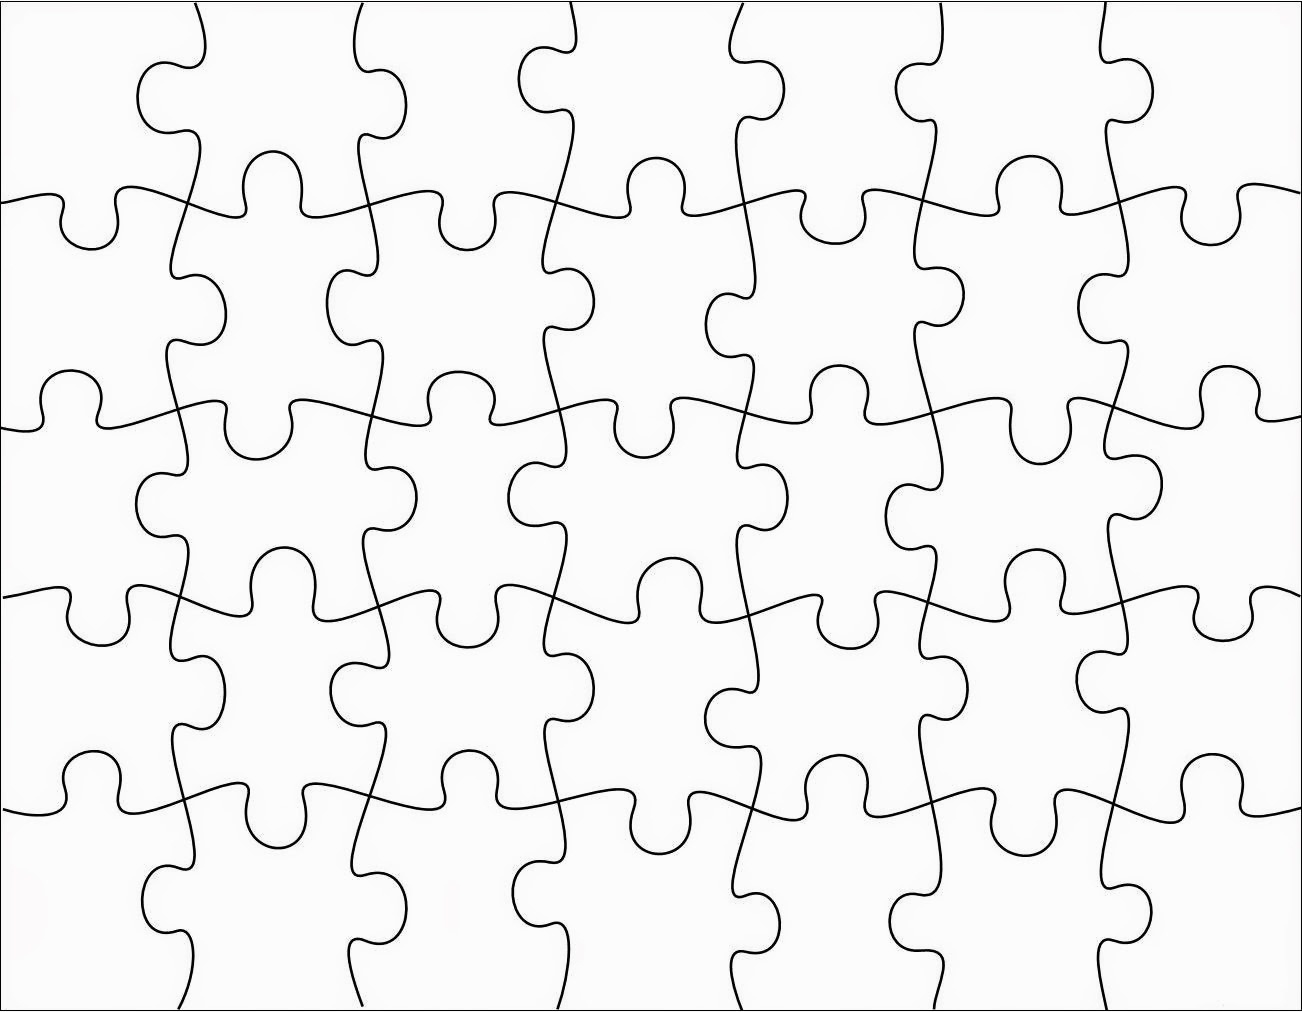 Free Printable Blank Jigsaw Puzzle Pieces